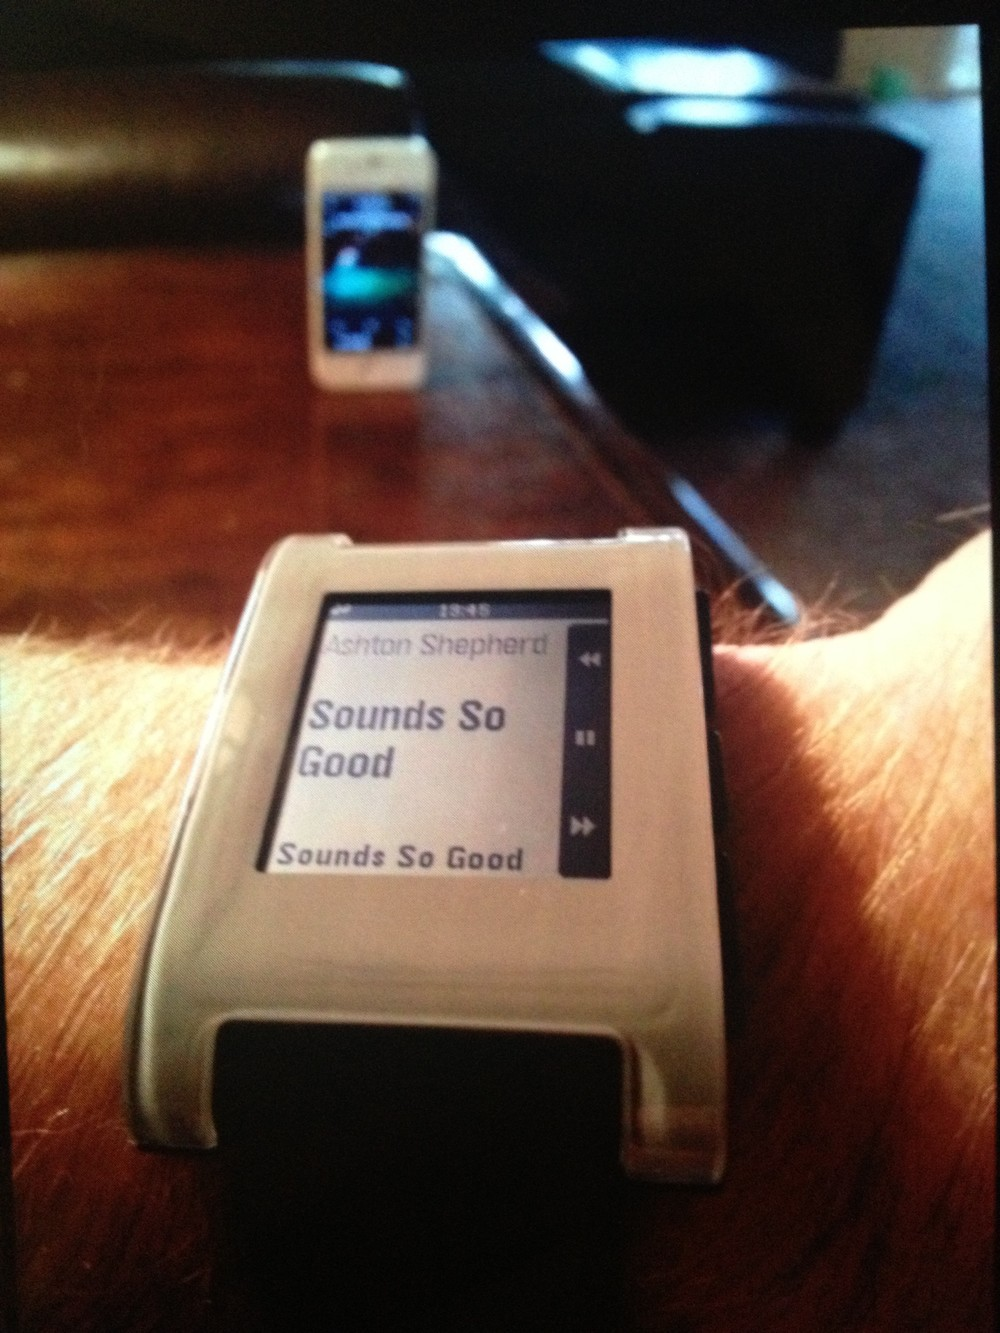 pebble-ipod-controller-ashton-shepherd-e1376283111700.jpg